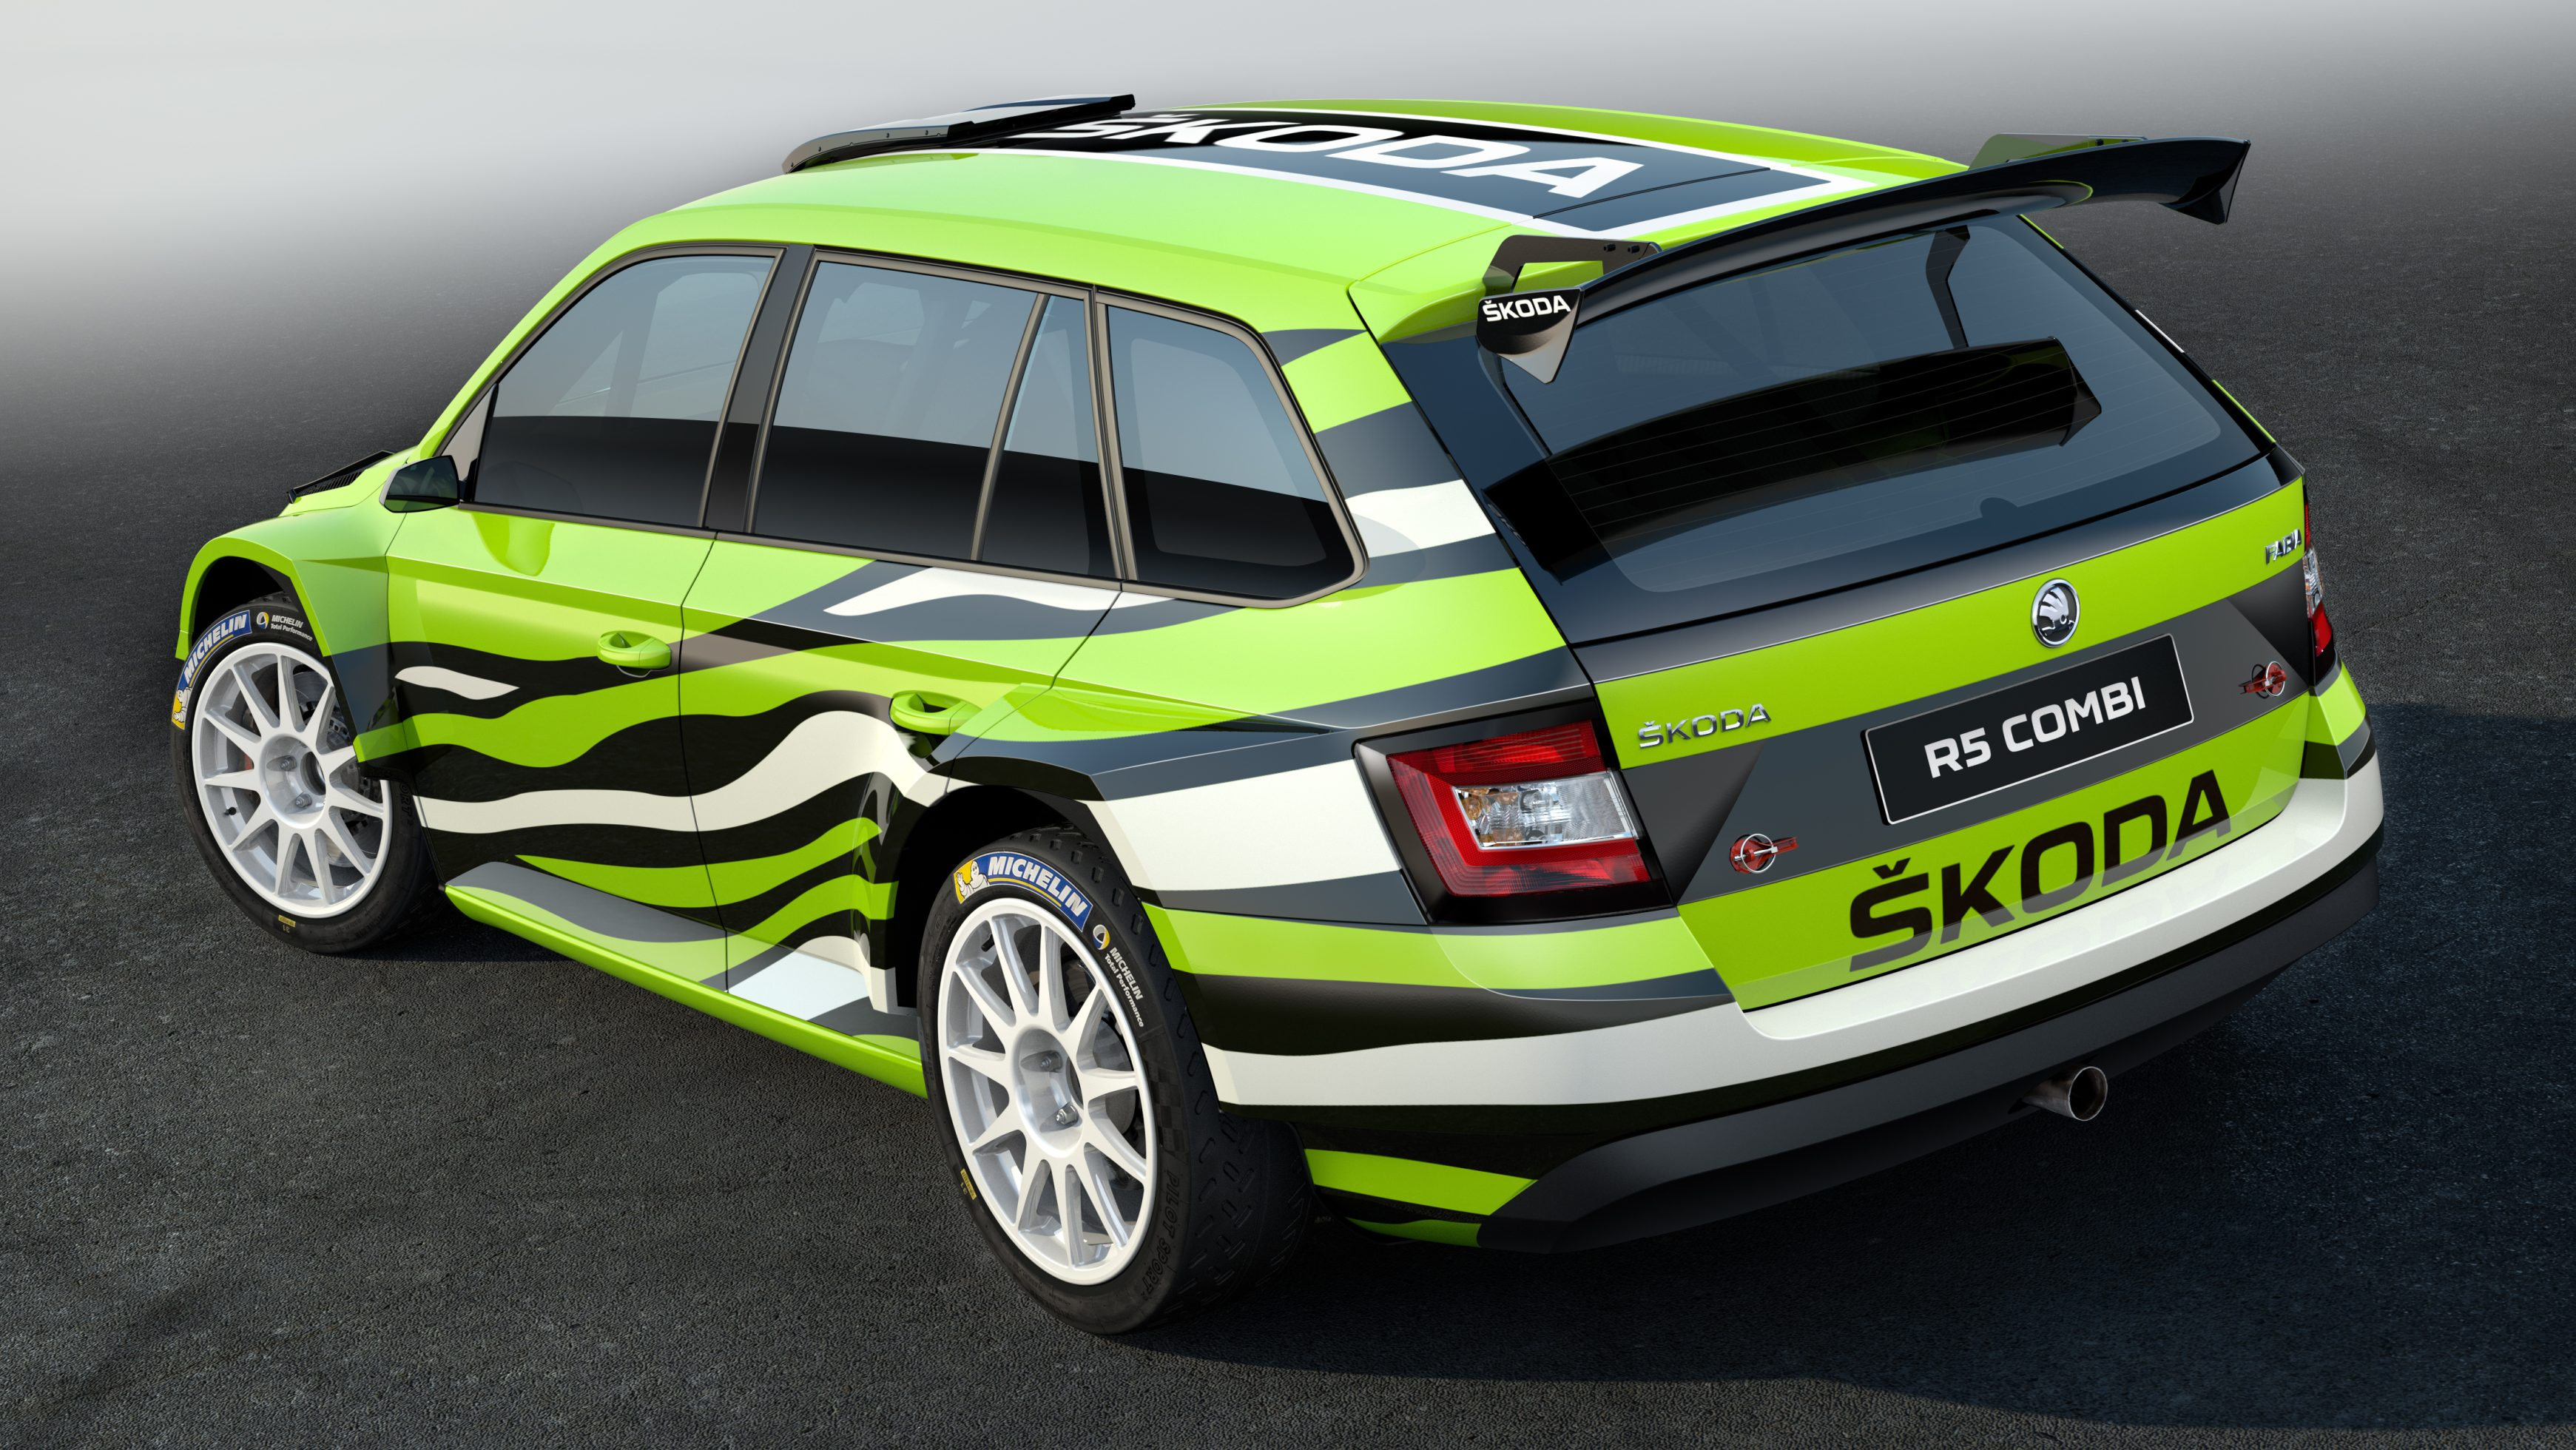 ŠKODA has opened the throttle: Five sports cars at